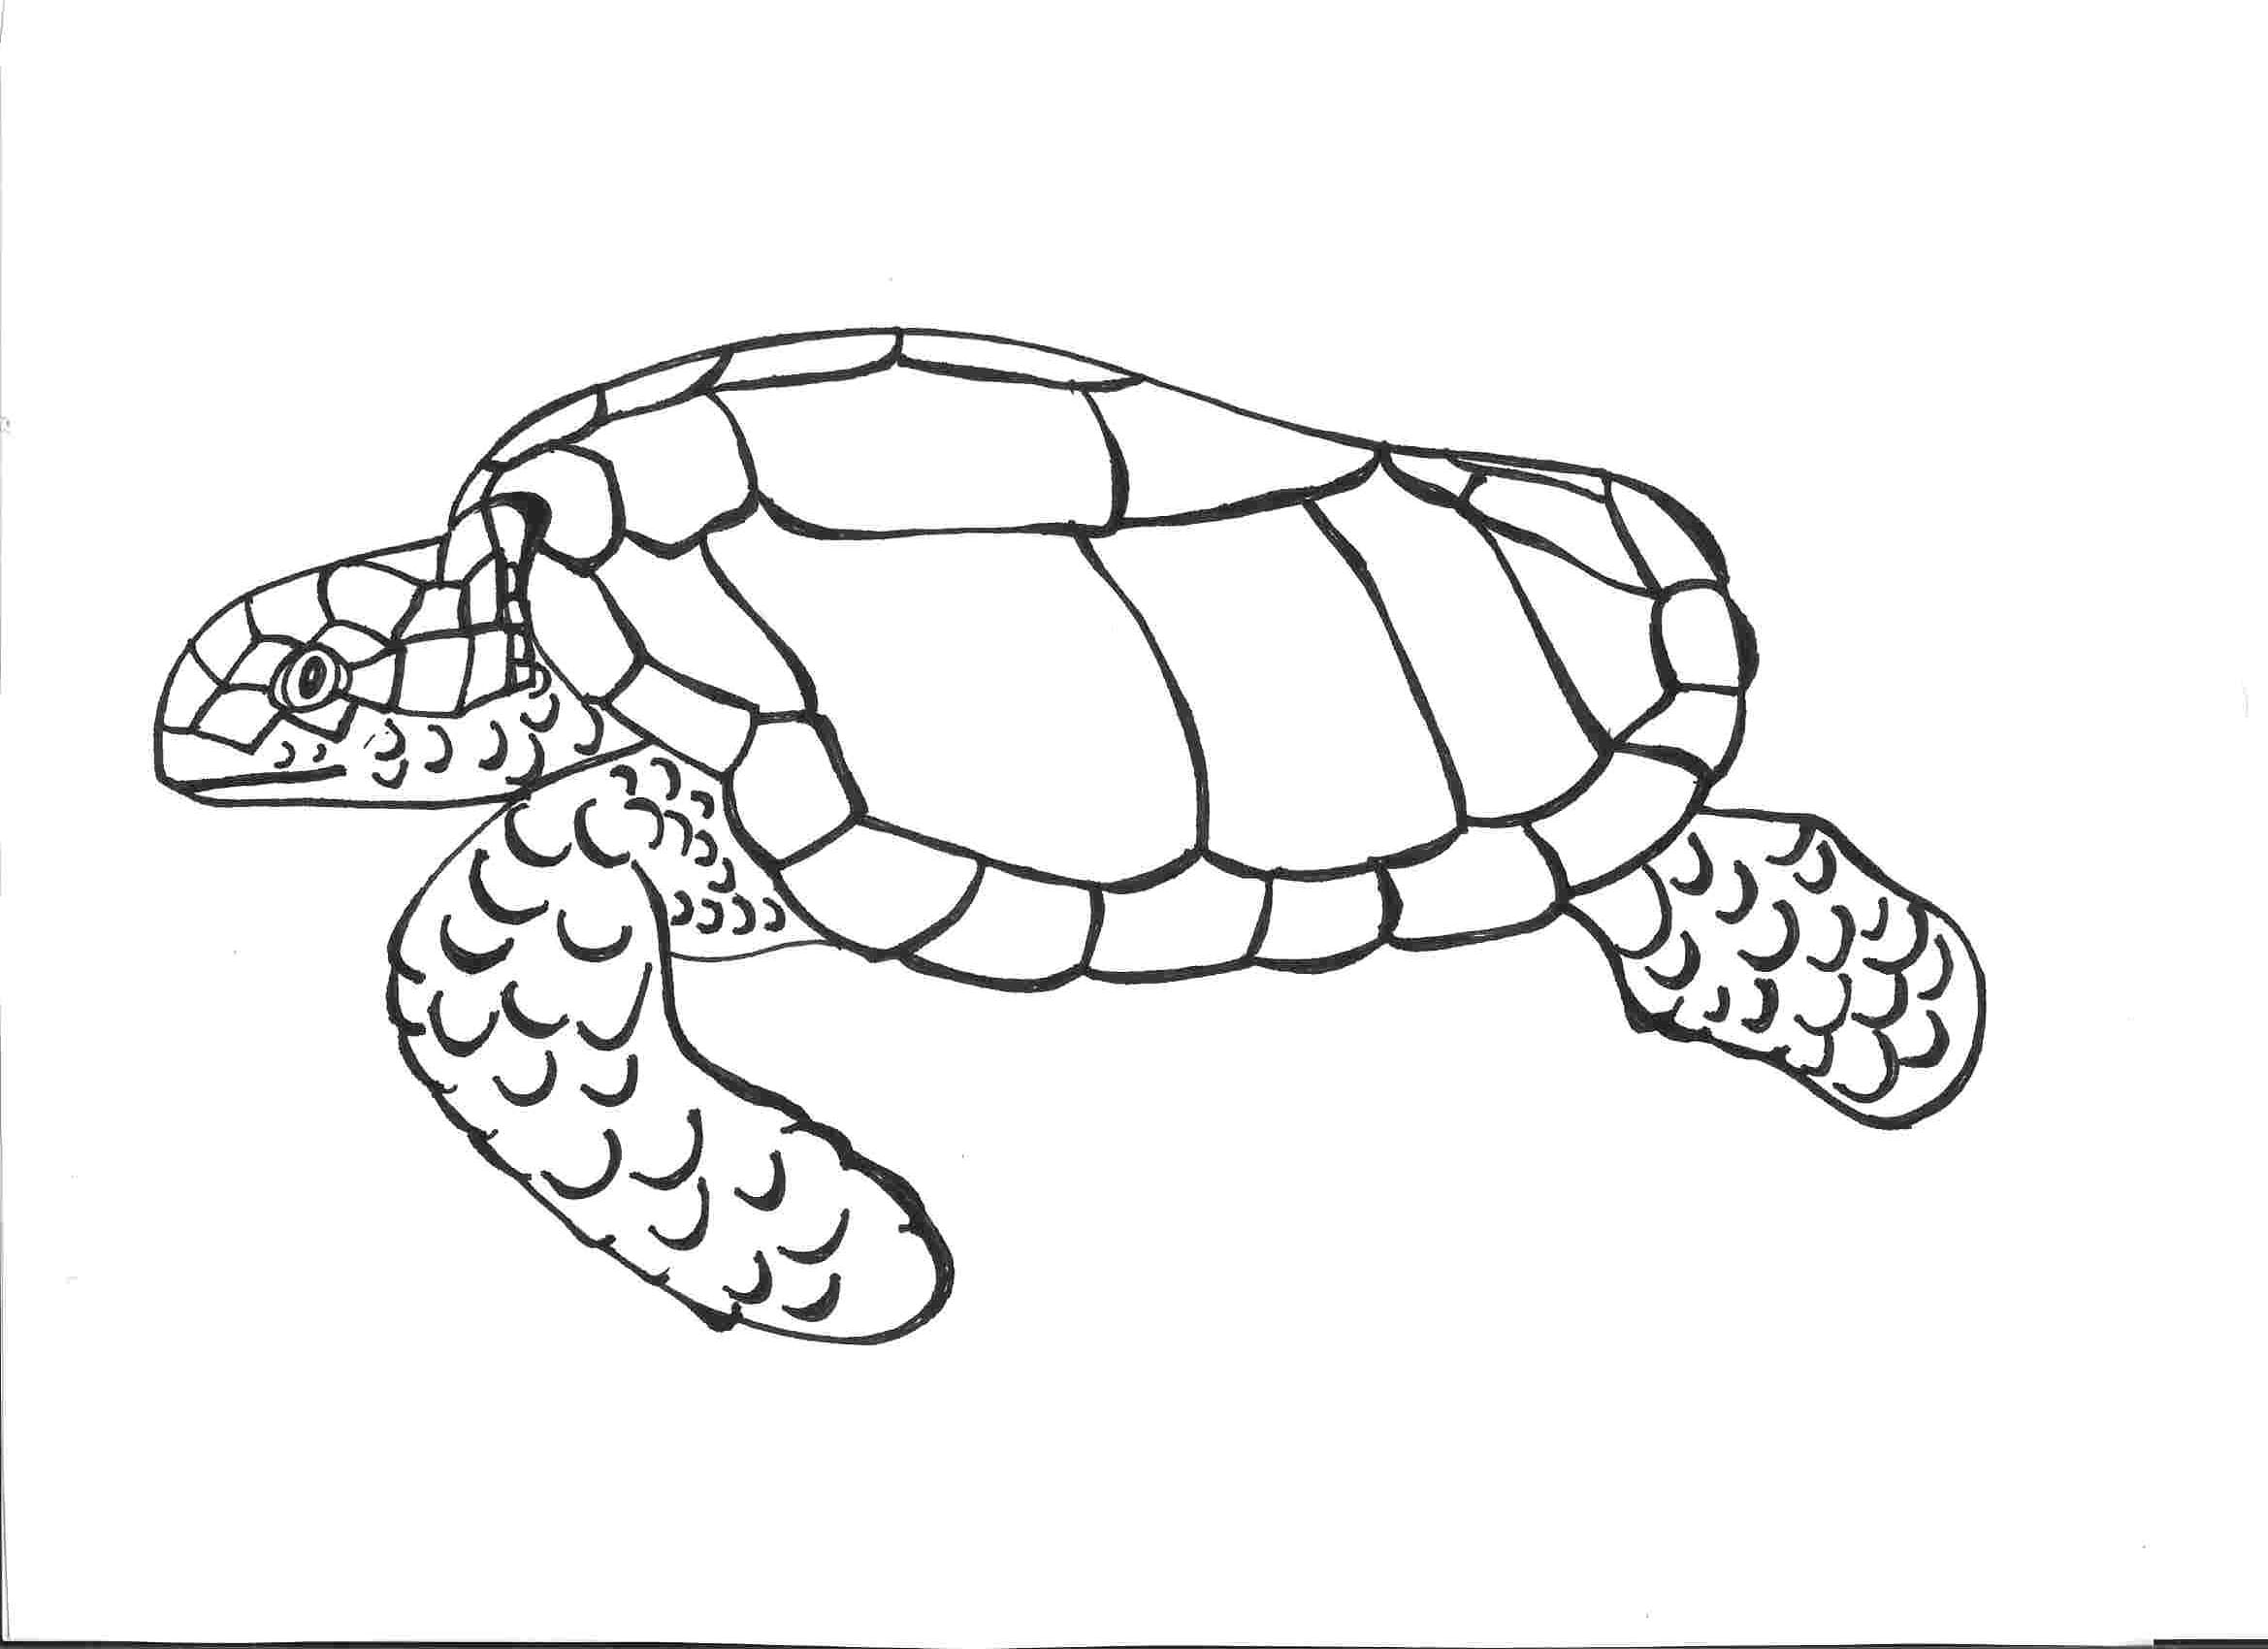 sea turtle coloring pages sea turtle coloring page free printable coloring pages sea pages turtle coloring